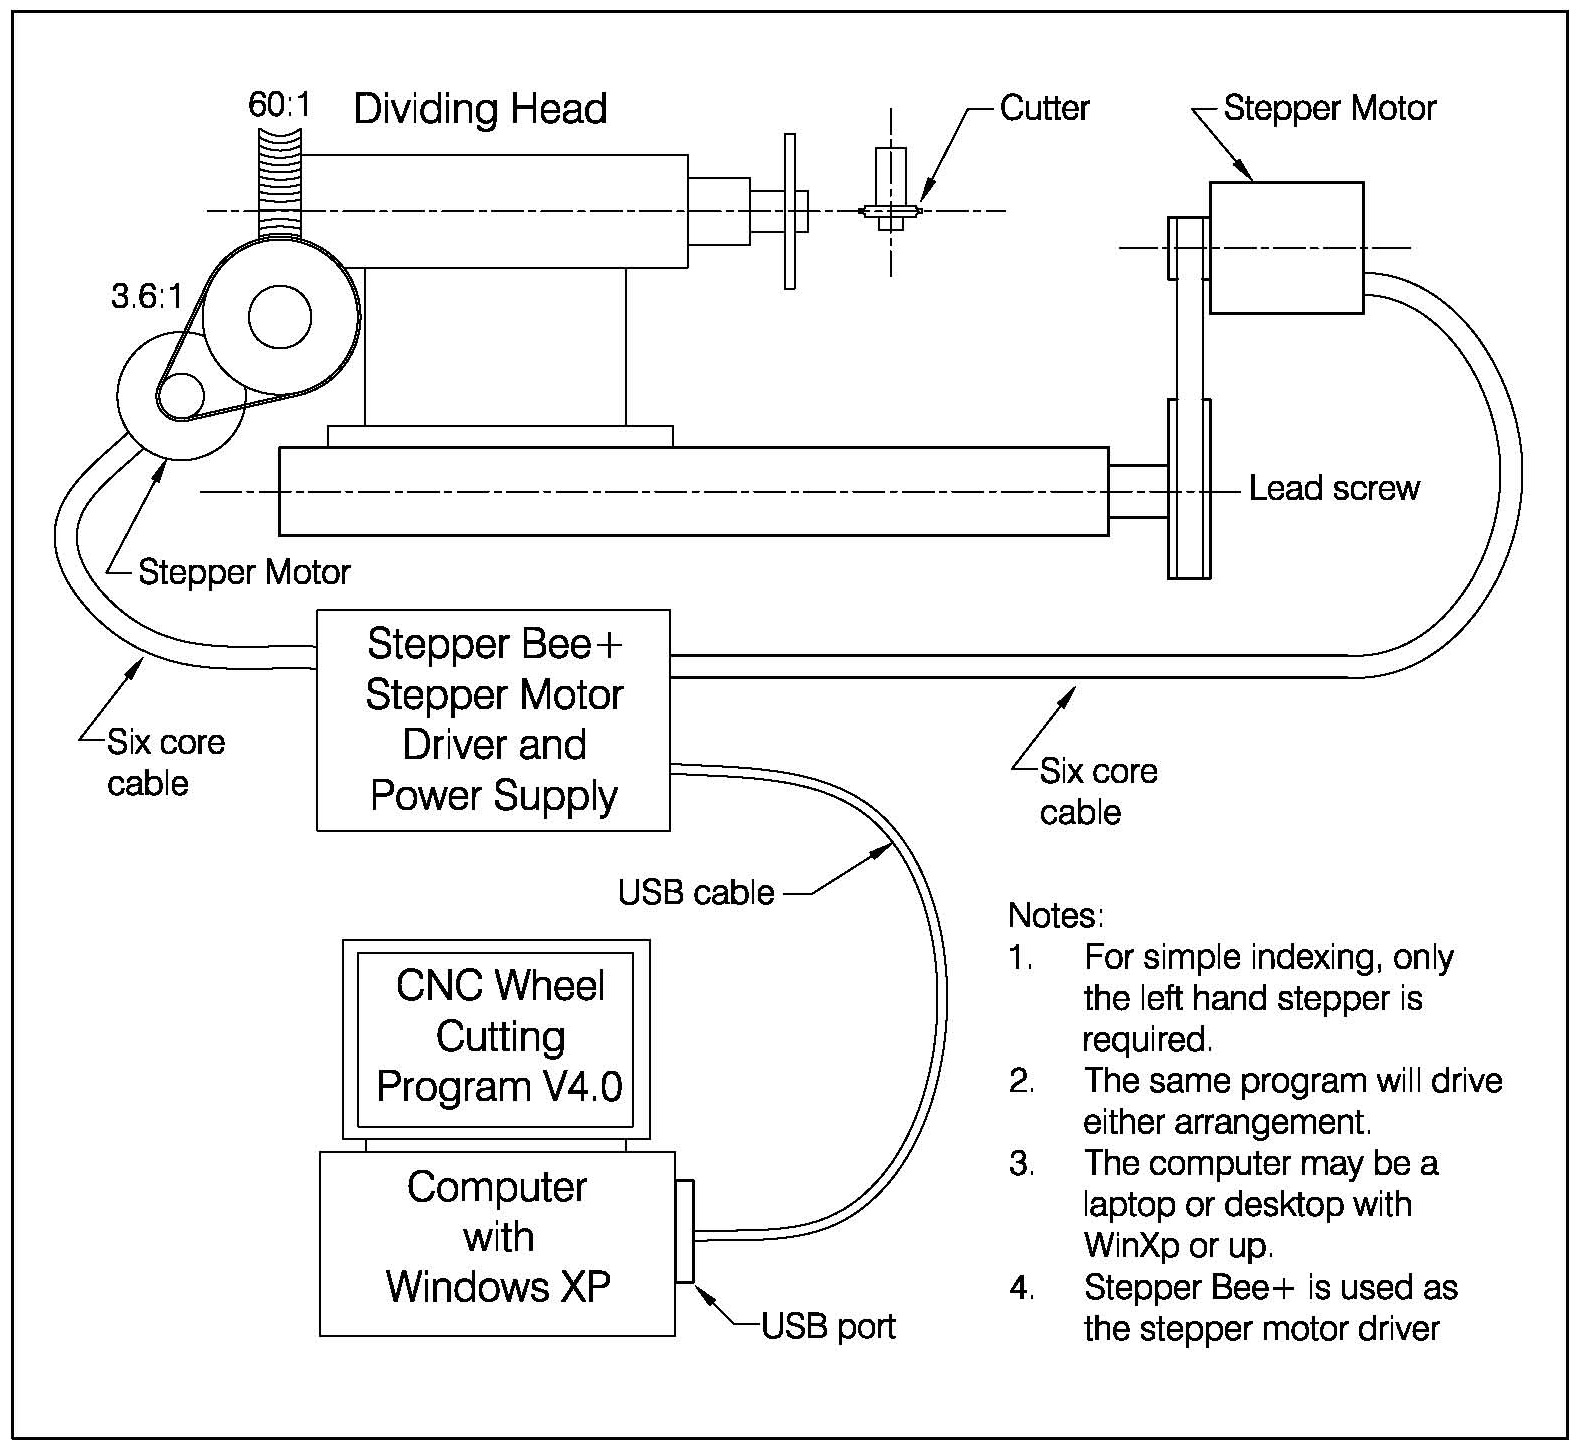 Computer Indexing Wheel Cutting Power Supply For Stepper Motor Drive A May Having Developed Software Clock Wheels With Use On My Cnc Mill It Became Apparent That Stand Alone